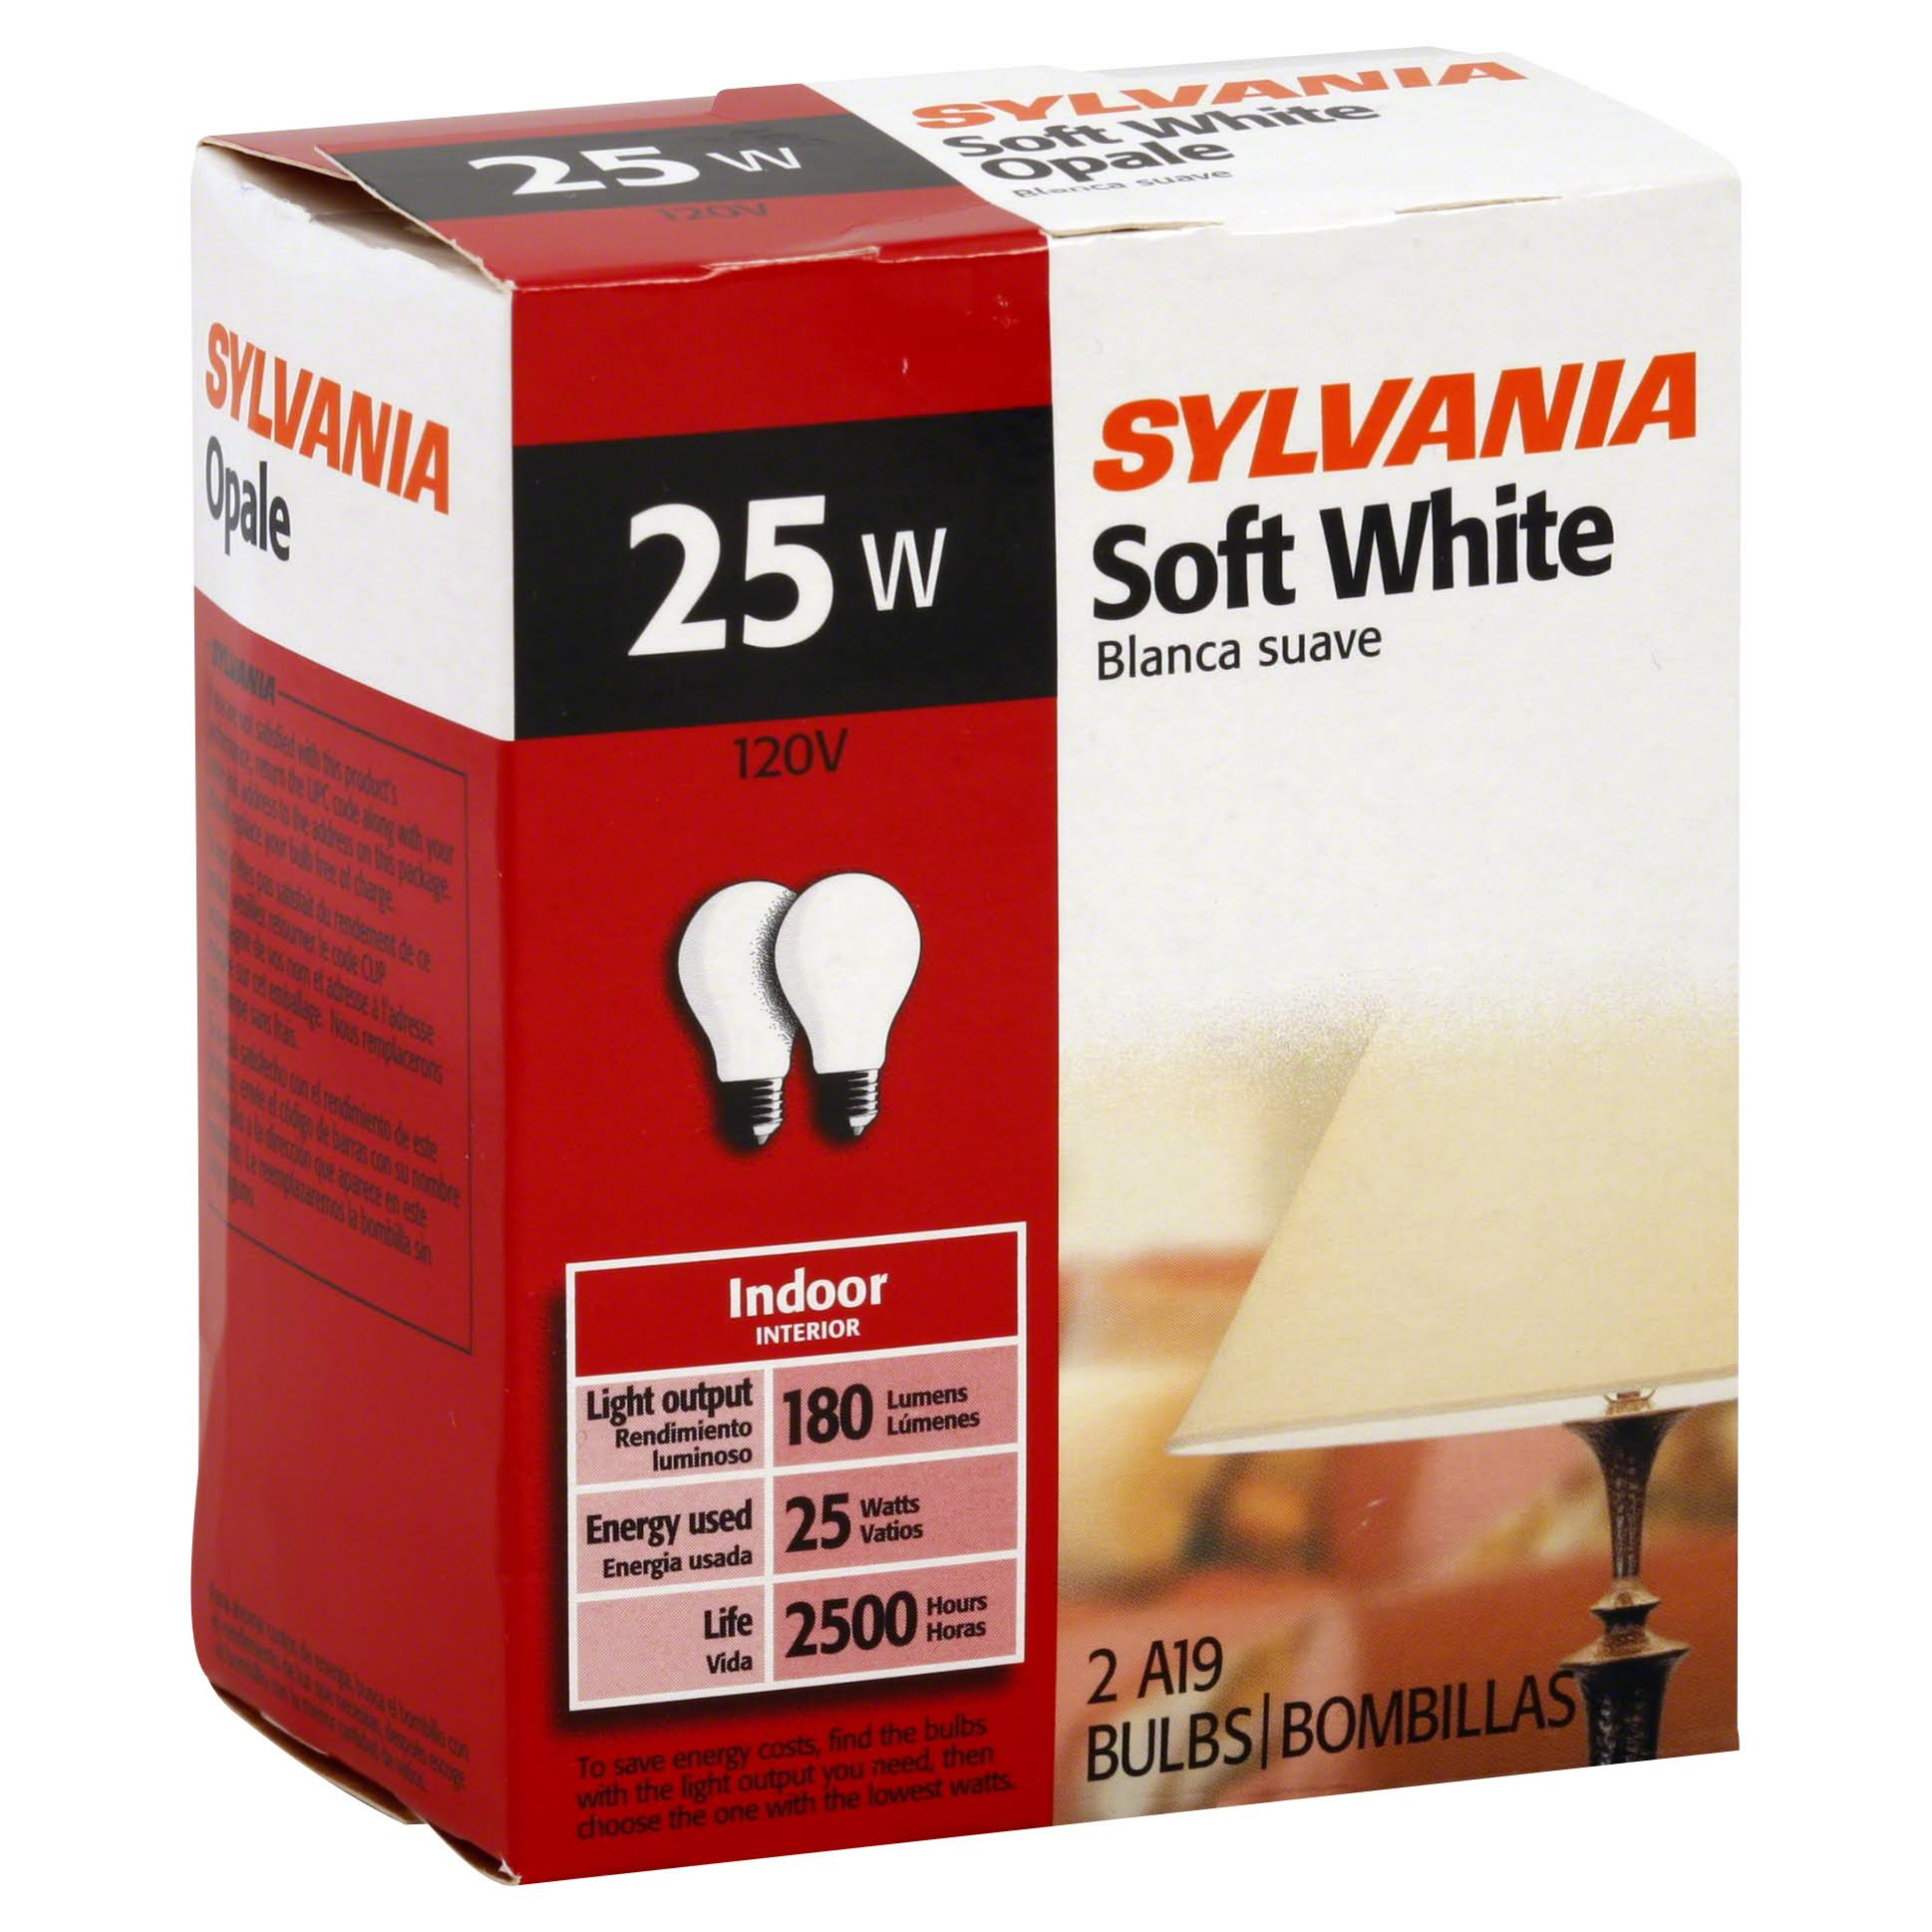 Sylvania Lighting Bulb - 25W, Soft White